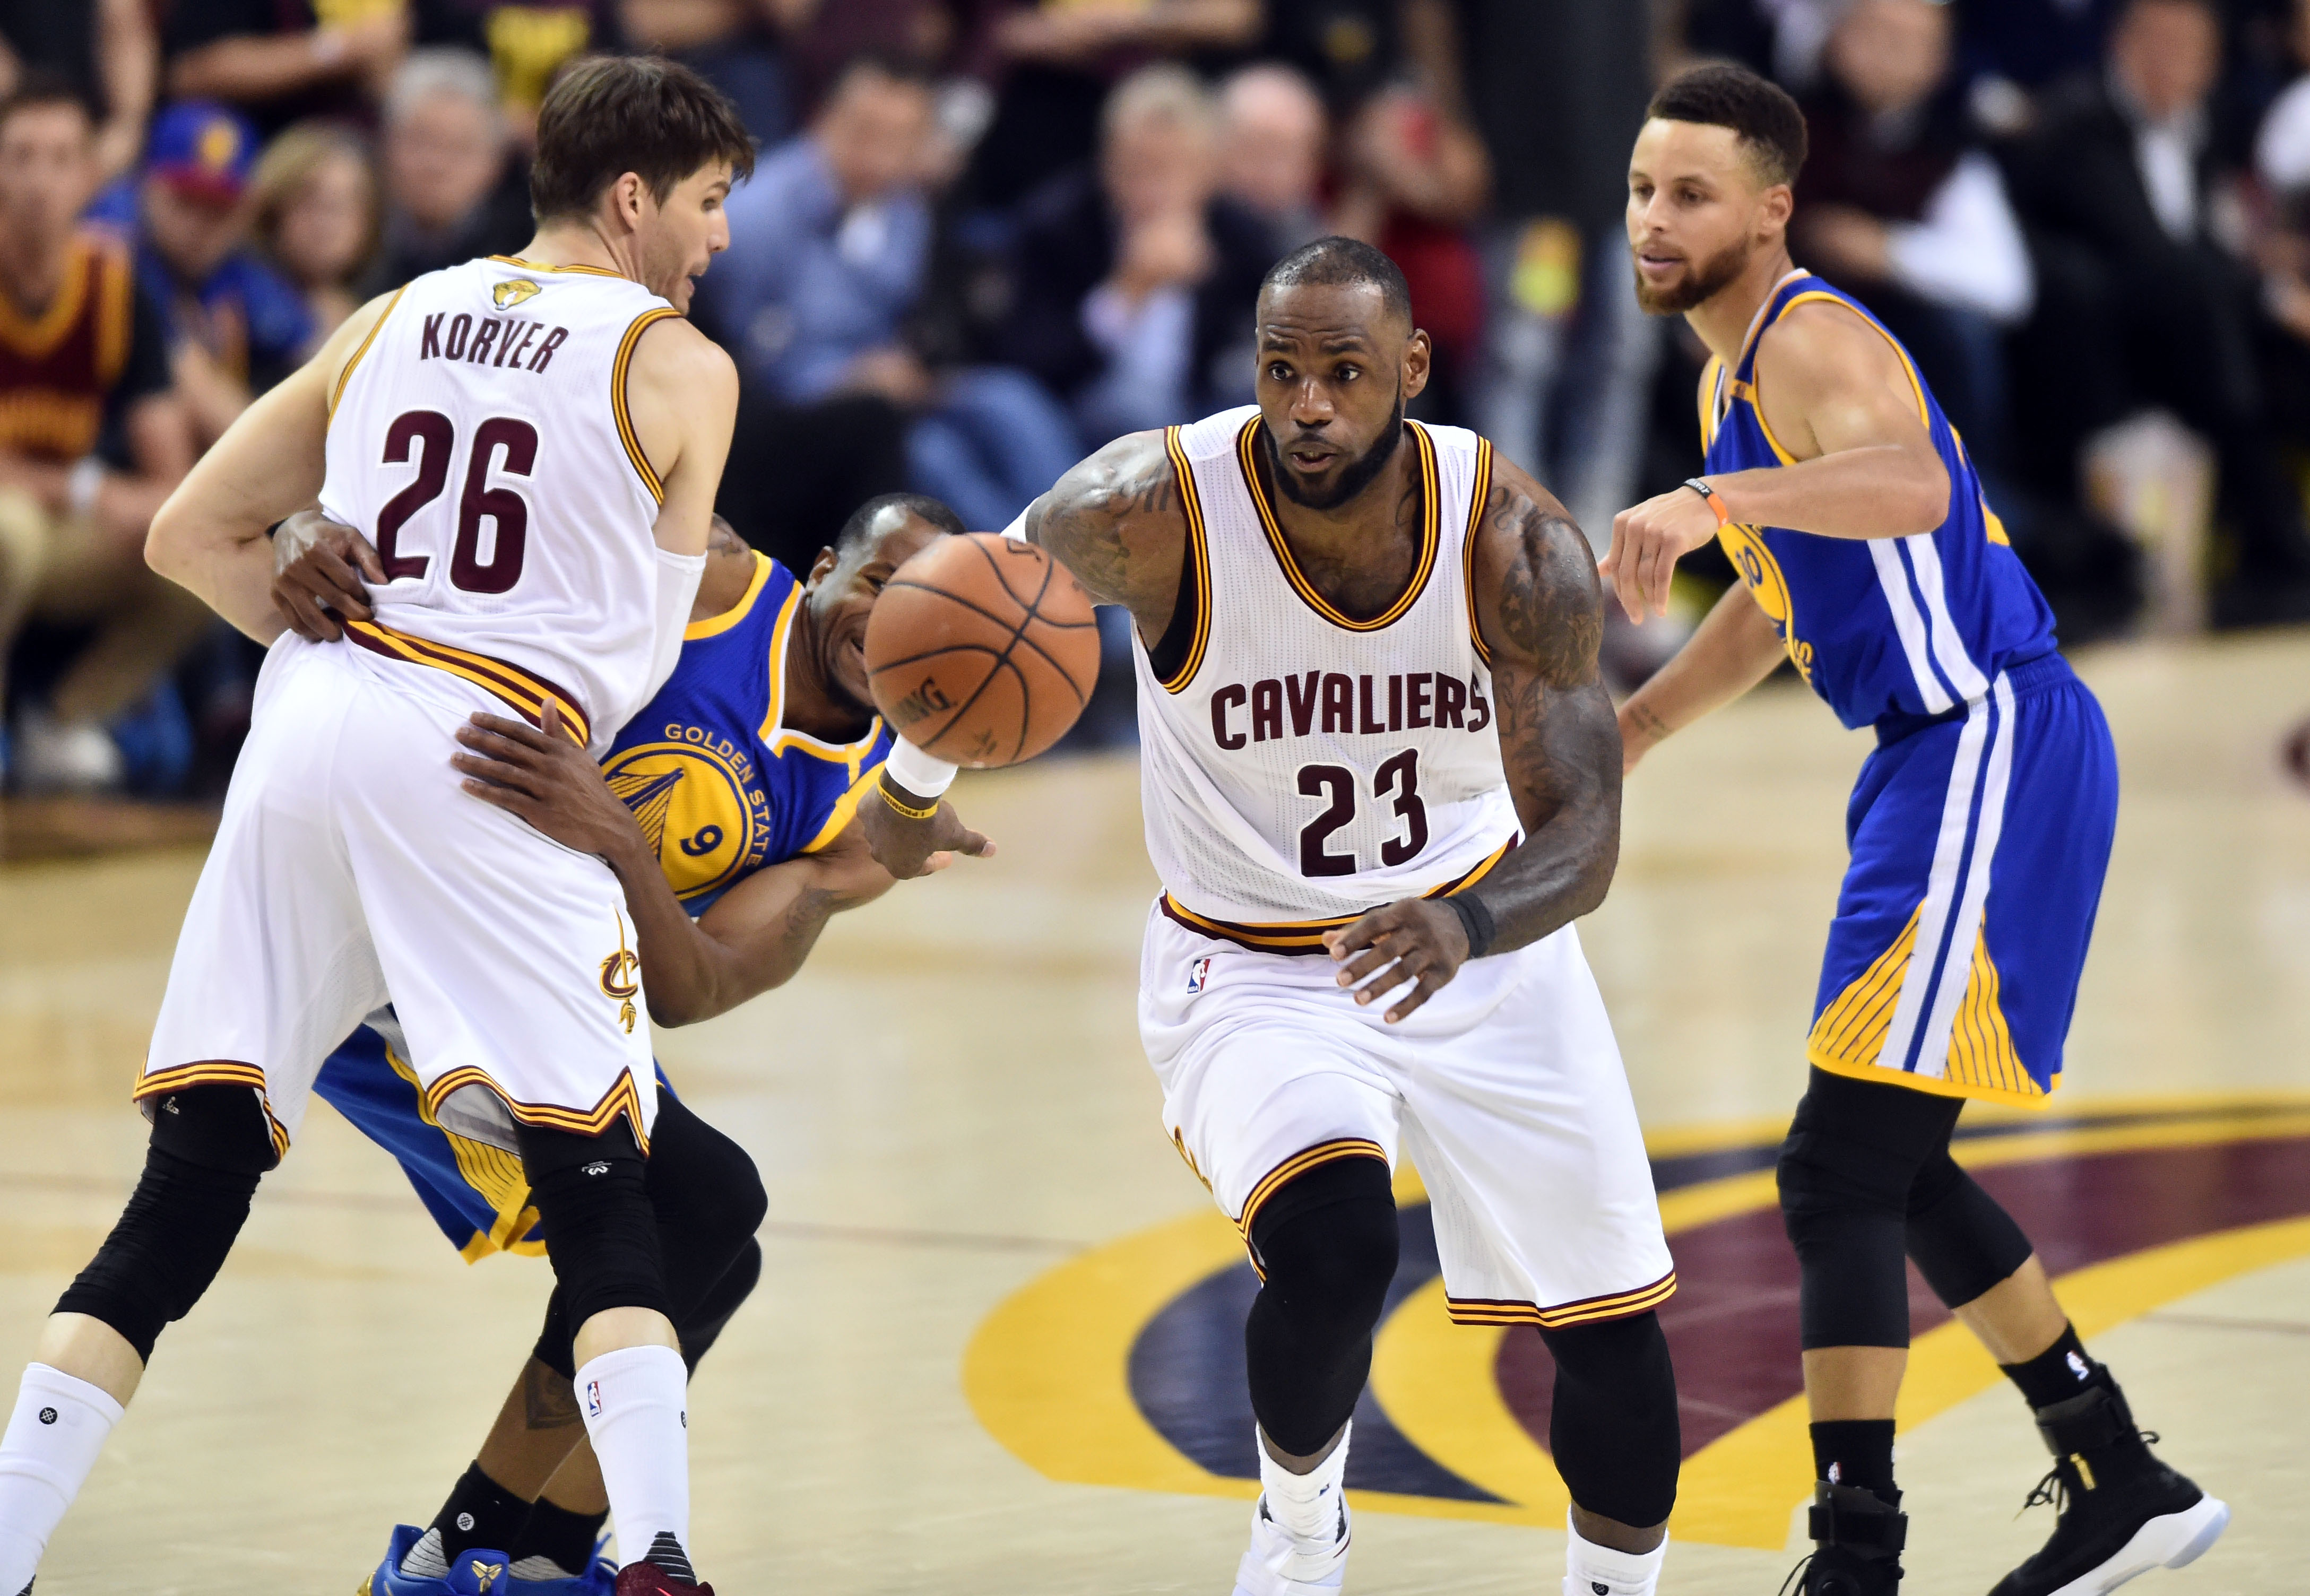 Nba Finals Game Two Highlights | All Basketball Scores Info